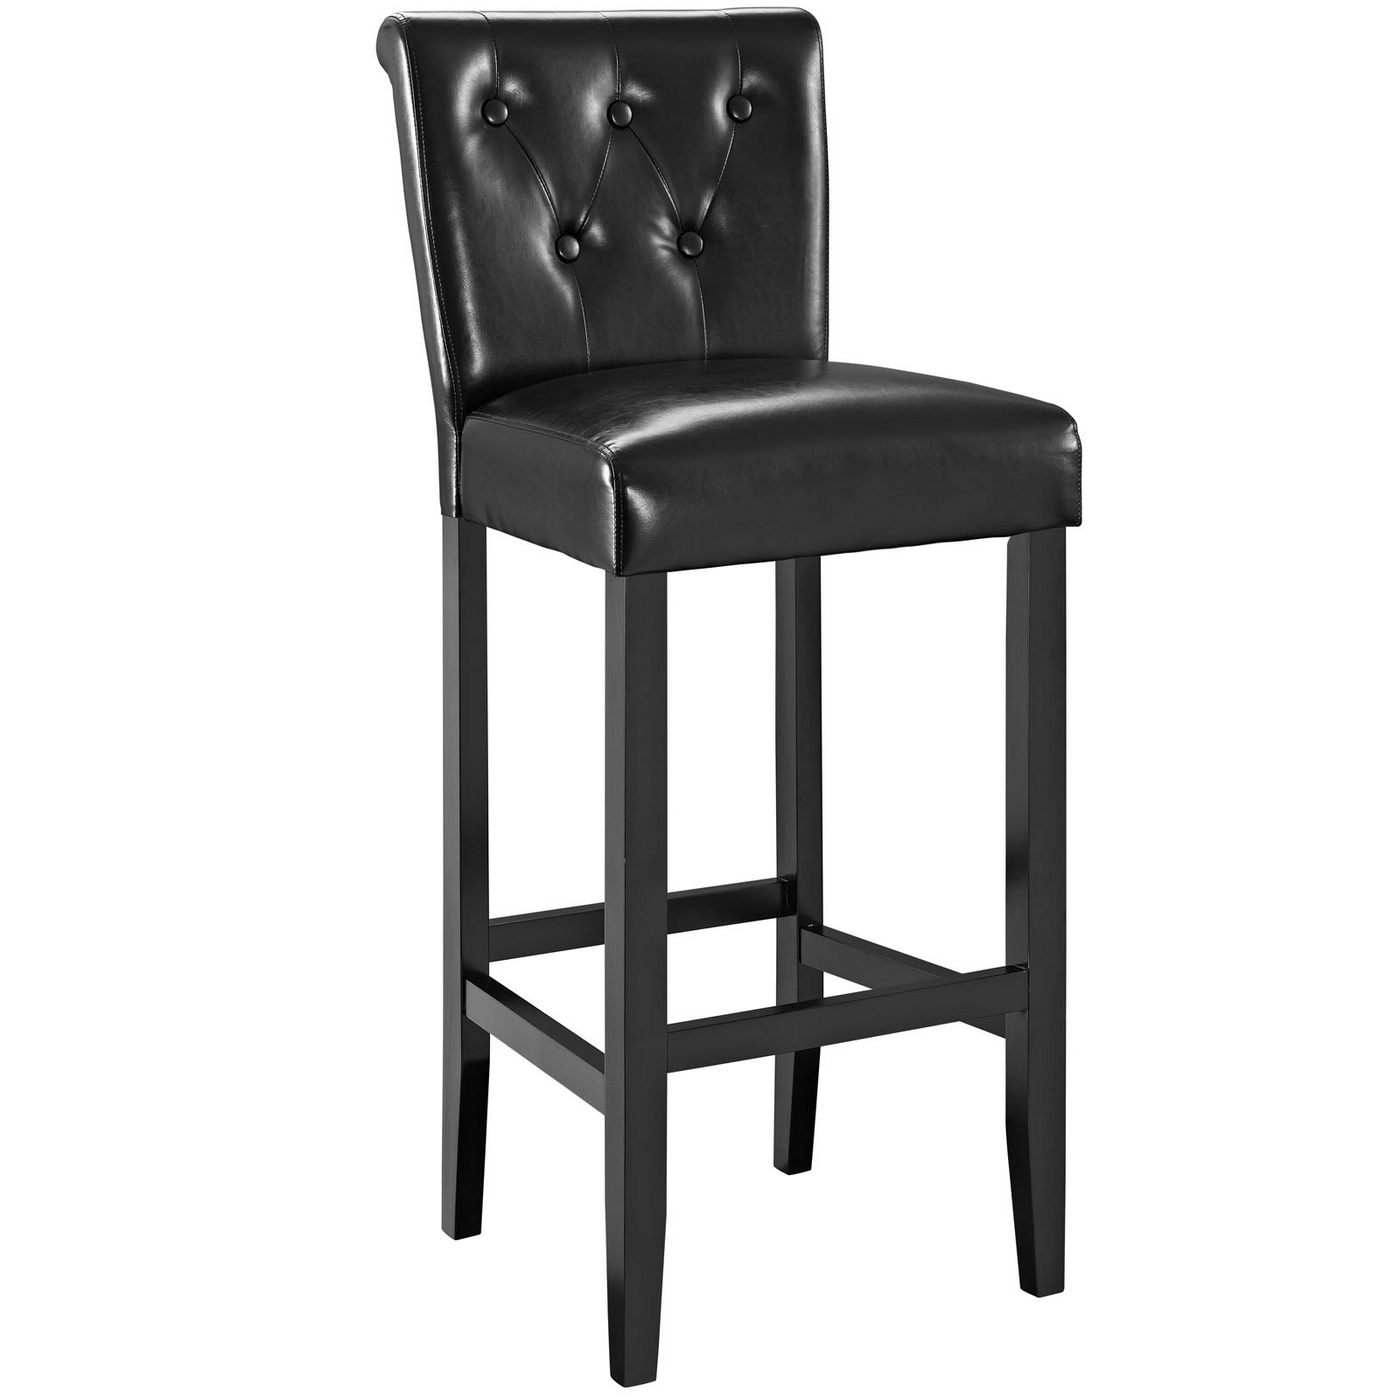 tender modern button tufted faux leather bar stool w foot stretcher black. Black Bedroom Furniture Sets. Home Design Ideas